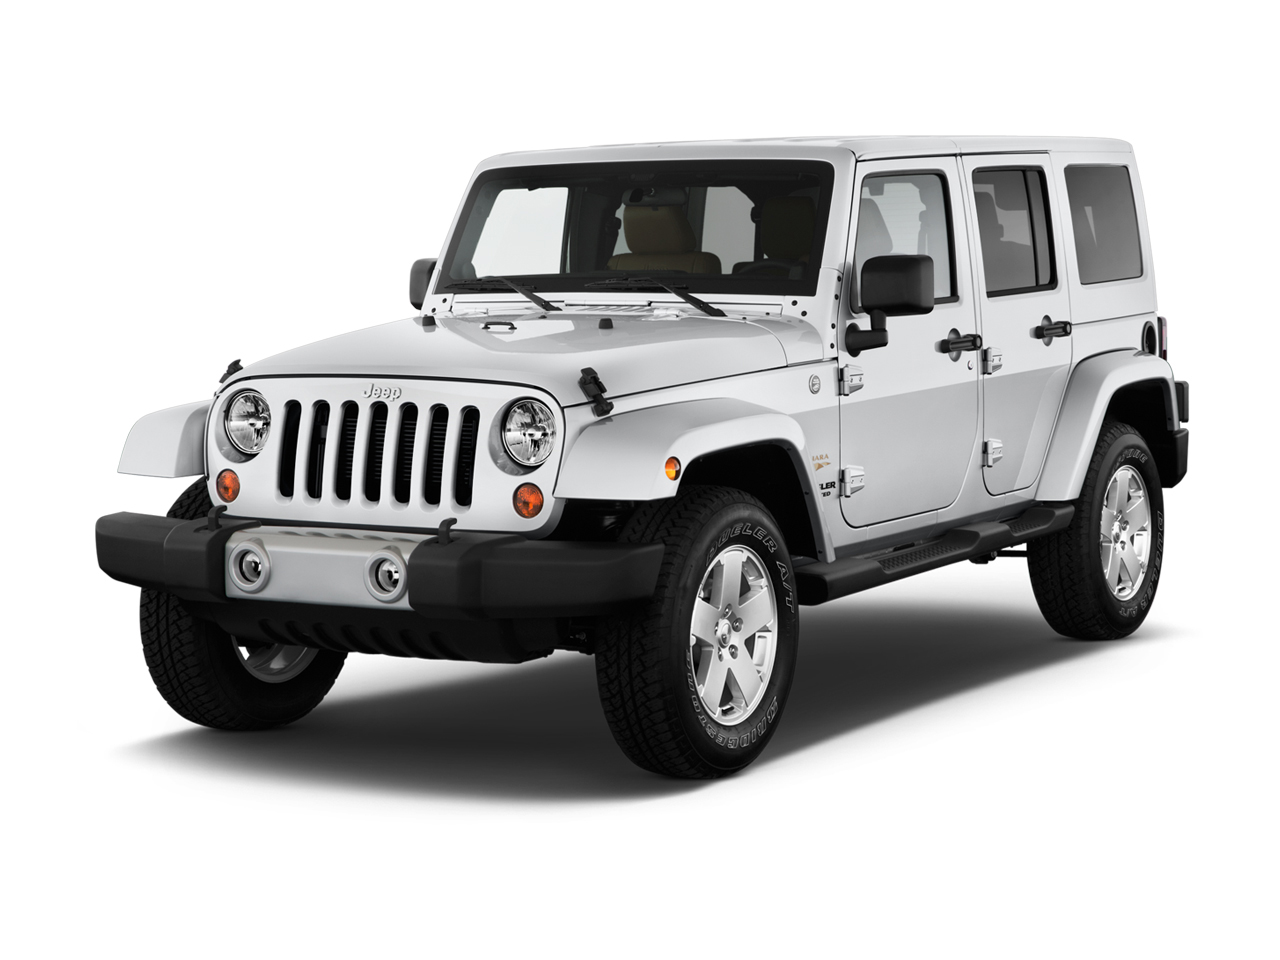 2012 jeep wrangler unlimited review ratings specs prices and photos the car connection. Black Bedroom Furniture Sets. Home Design Ideas